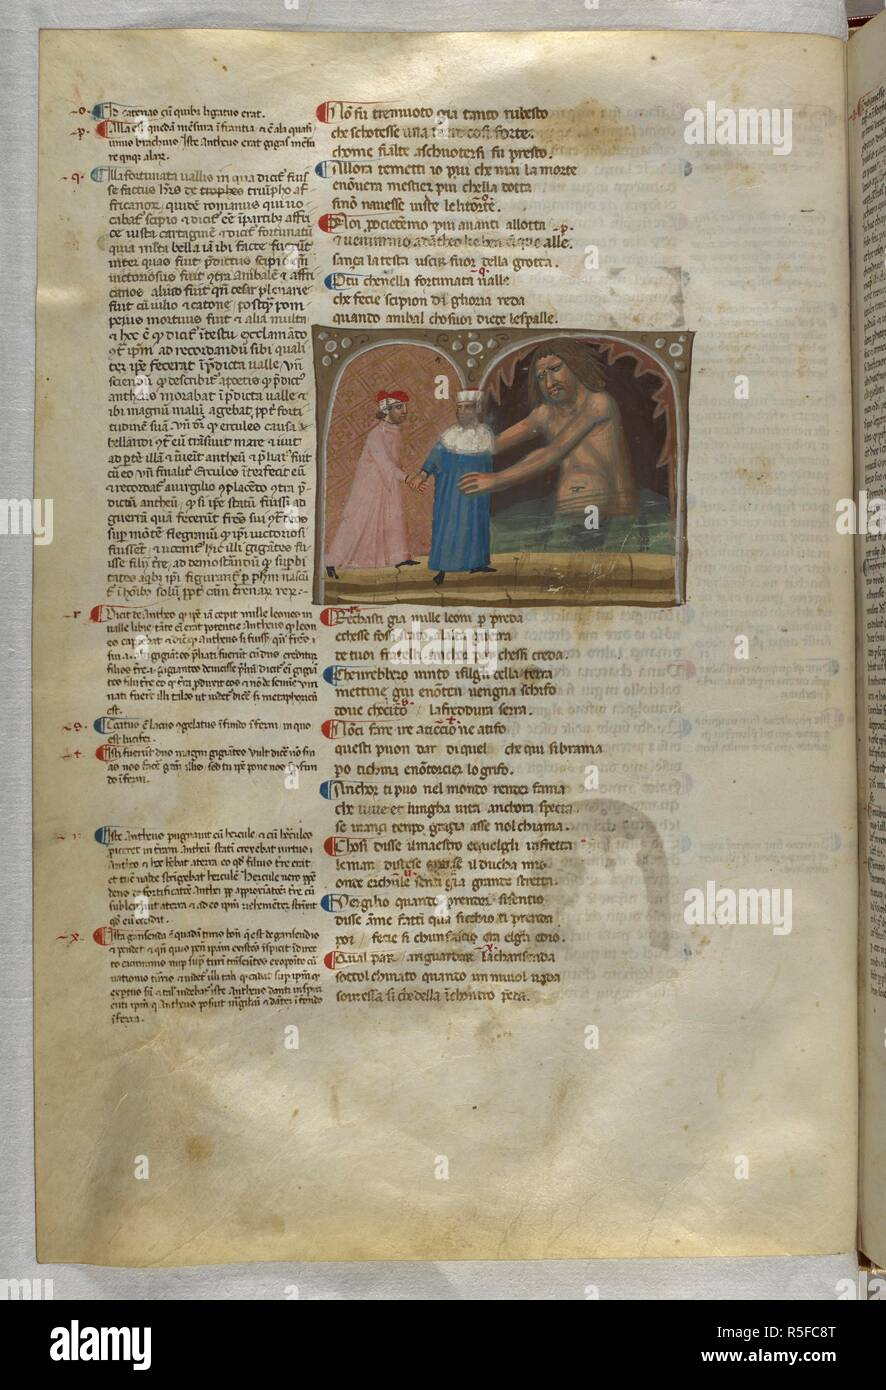 Inferno: Virgil guides Dante into the arms of the giant Anteus. Dante Alighieri, Divina Commedia ( The Divine Comedy ), with a commentary in Latin. 1st half of the 14th century. Source: Egerton 943, f.56v. Language: Italian, Latin. - Stock Image